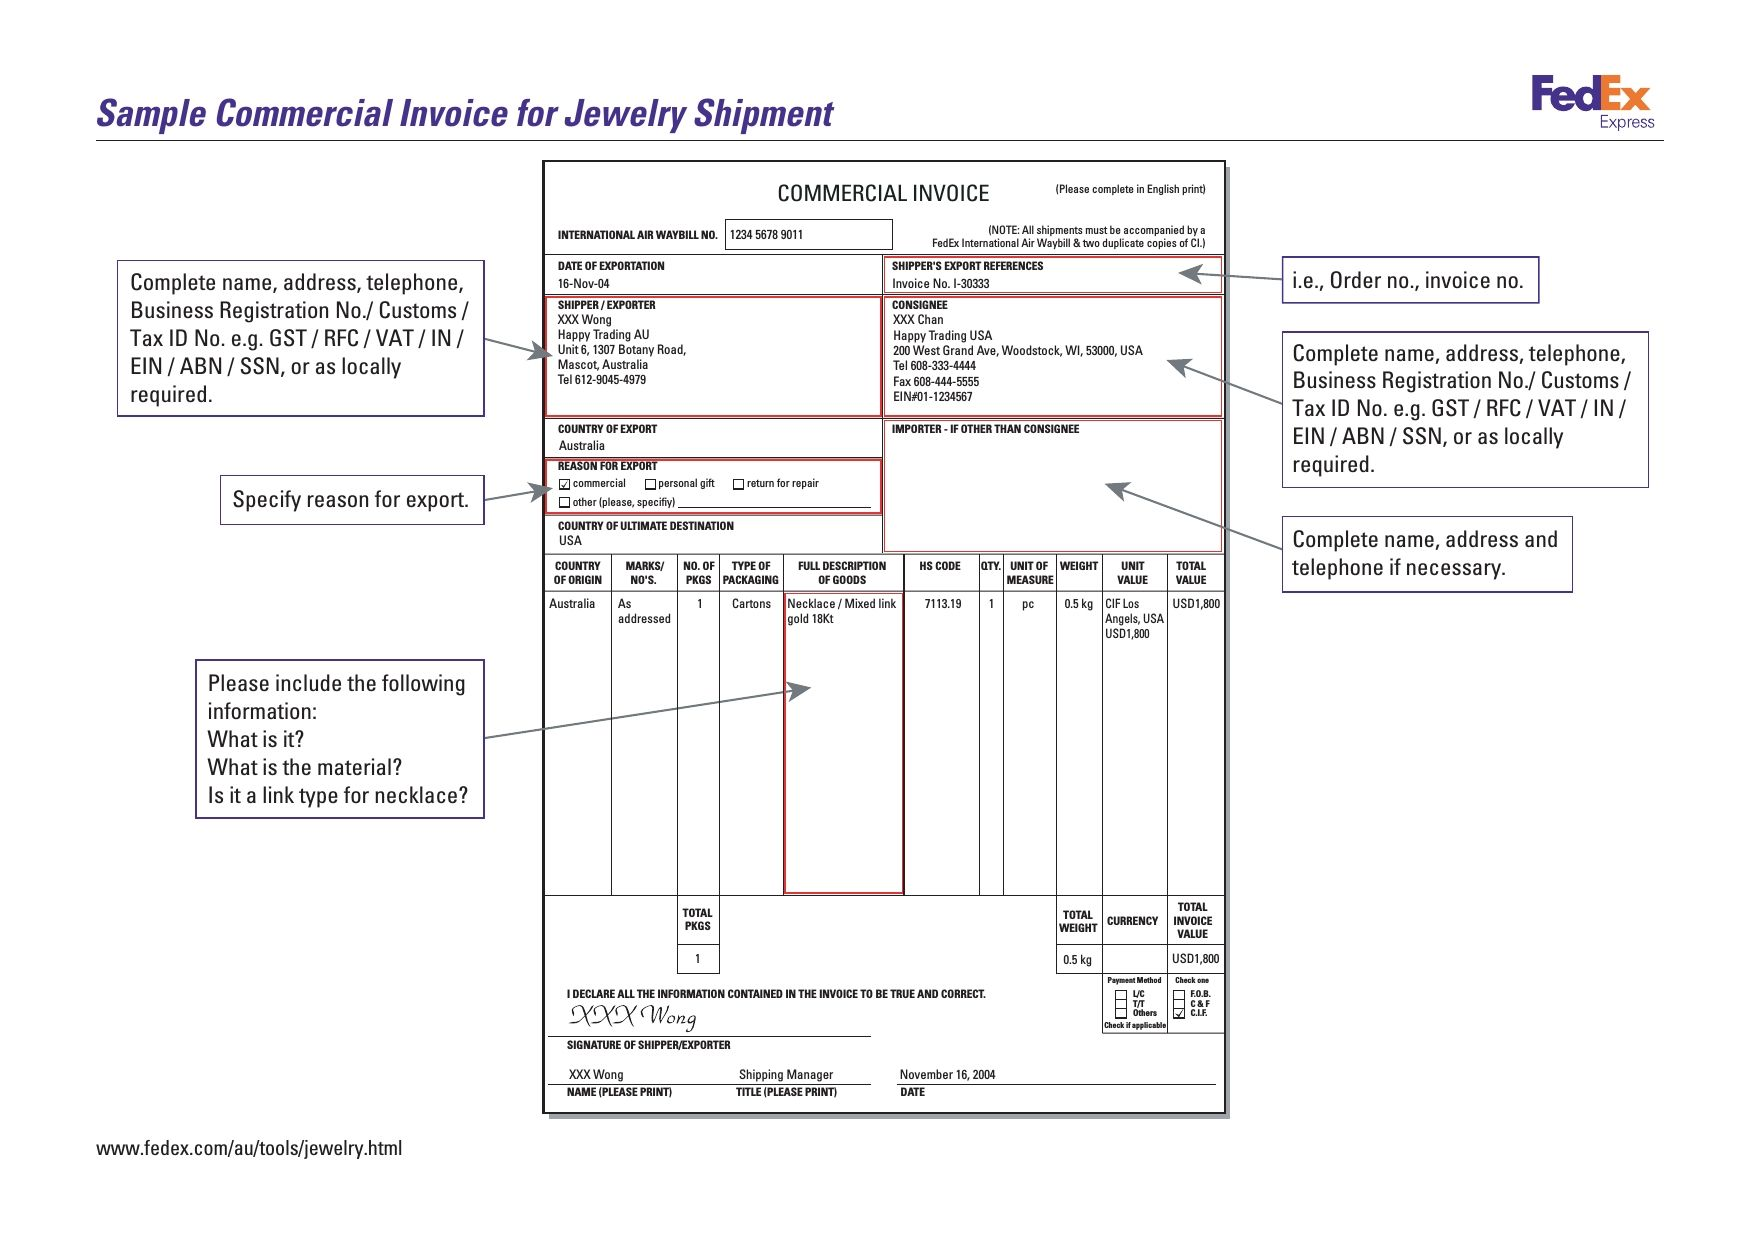 sample commercial invoice for jewelry shipment no commercial value ...